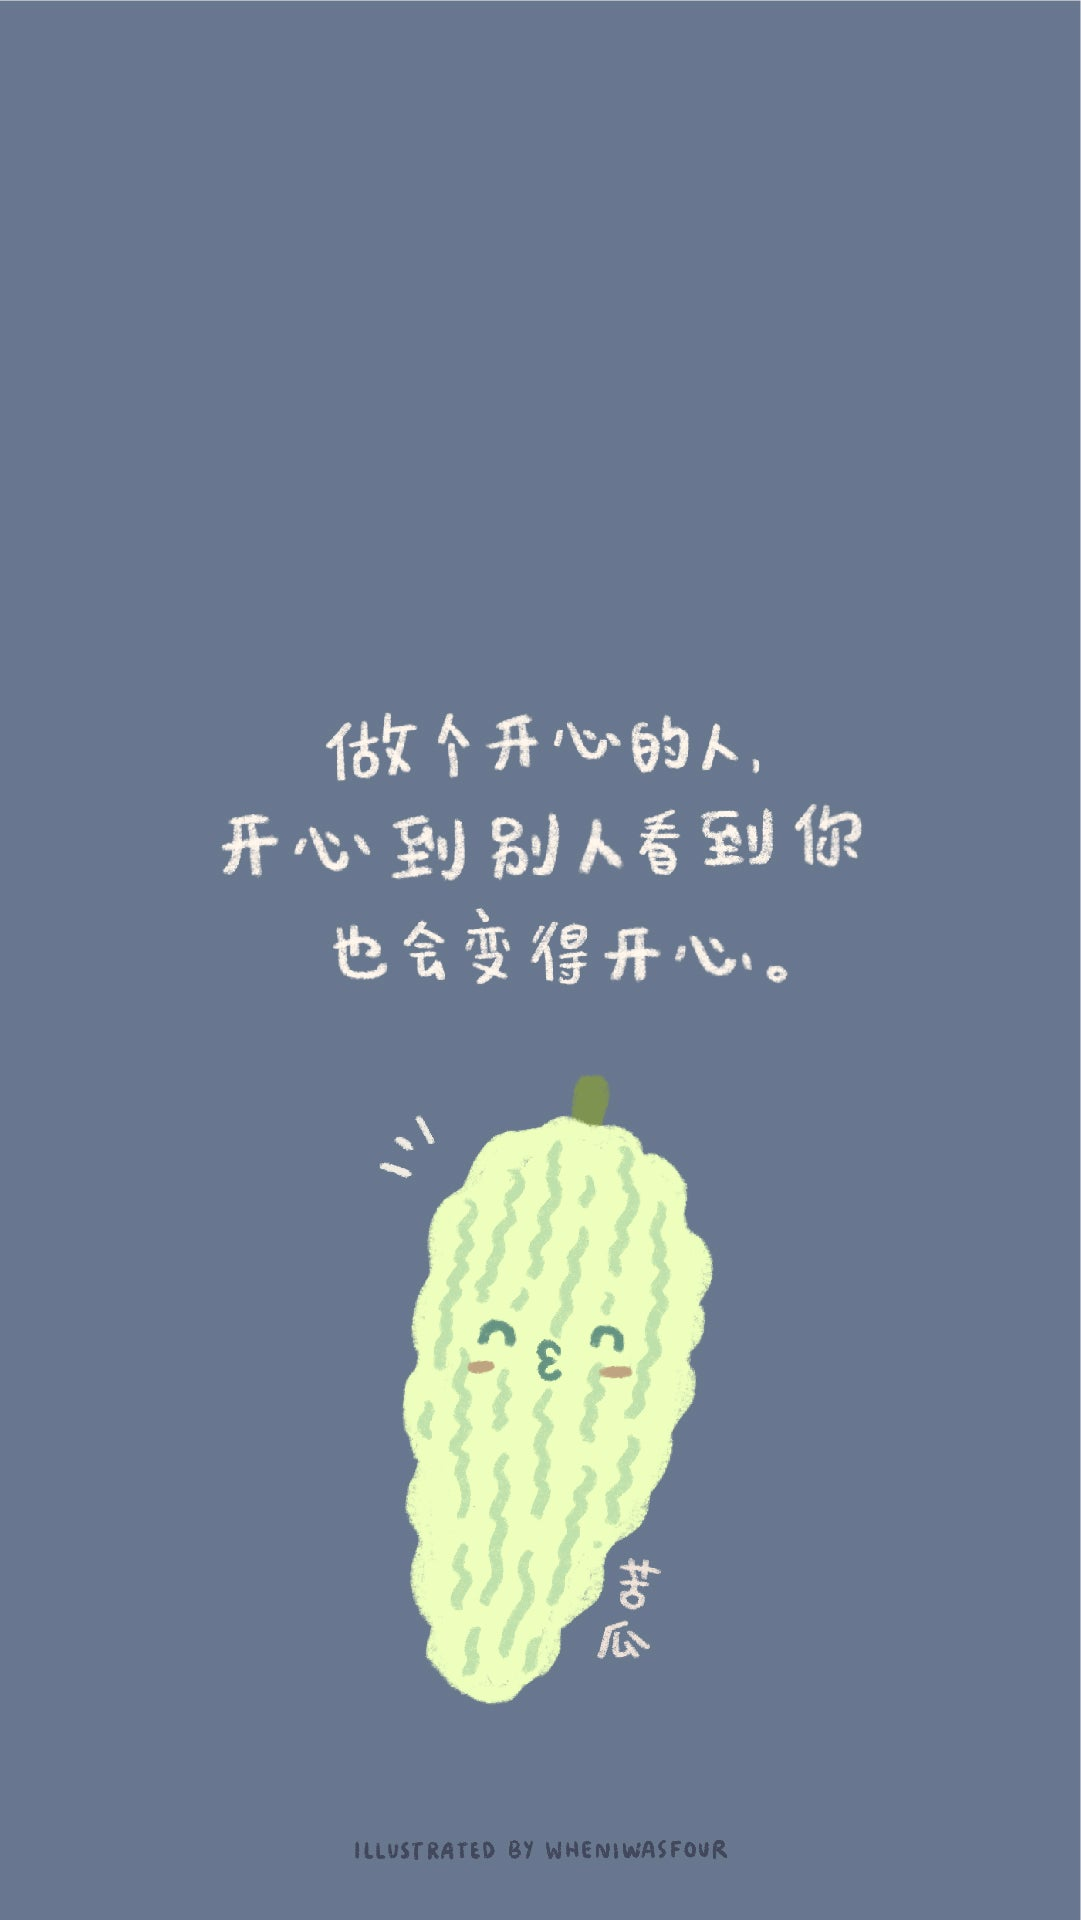 phone wallpaper of a digital illustration of a chinese verse about being a happy person and spreading happiness wheniwasfour